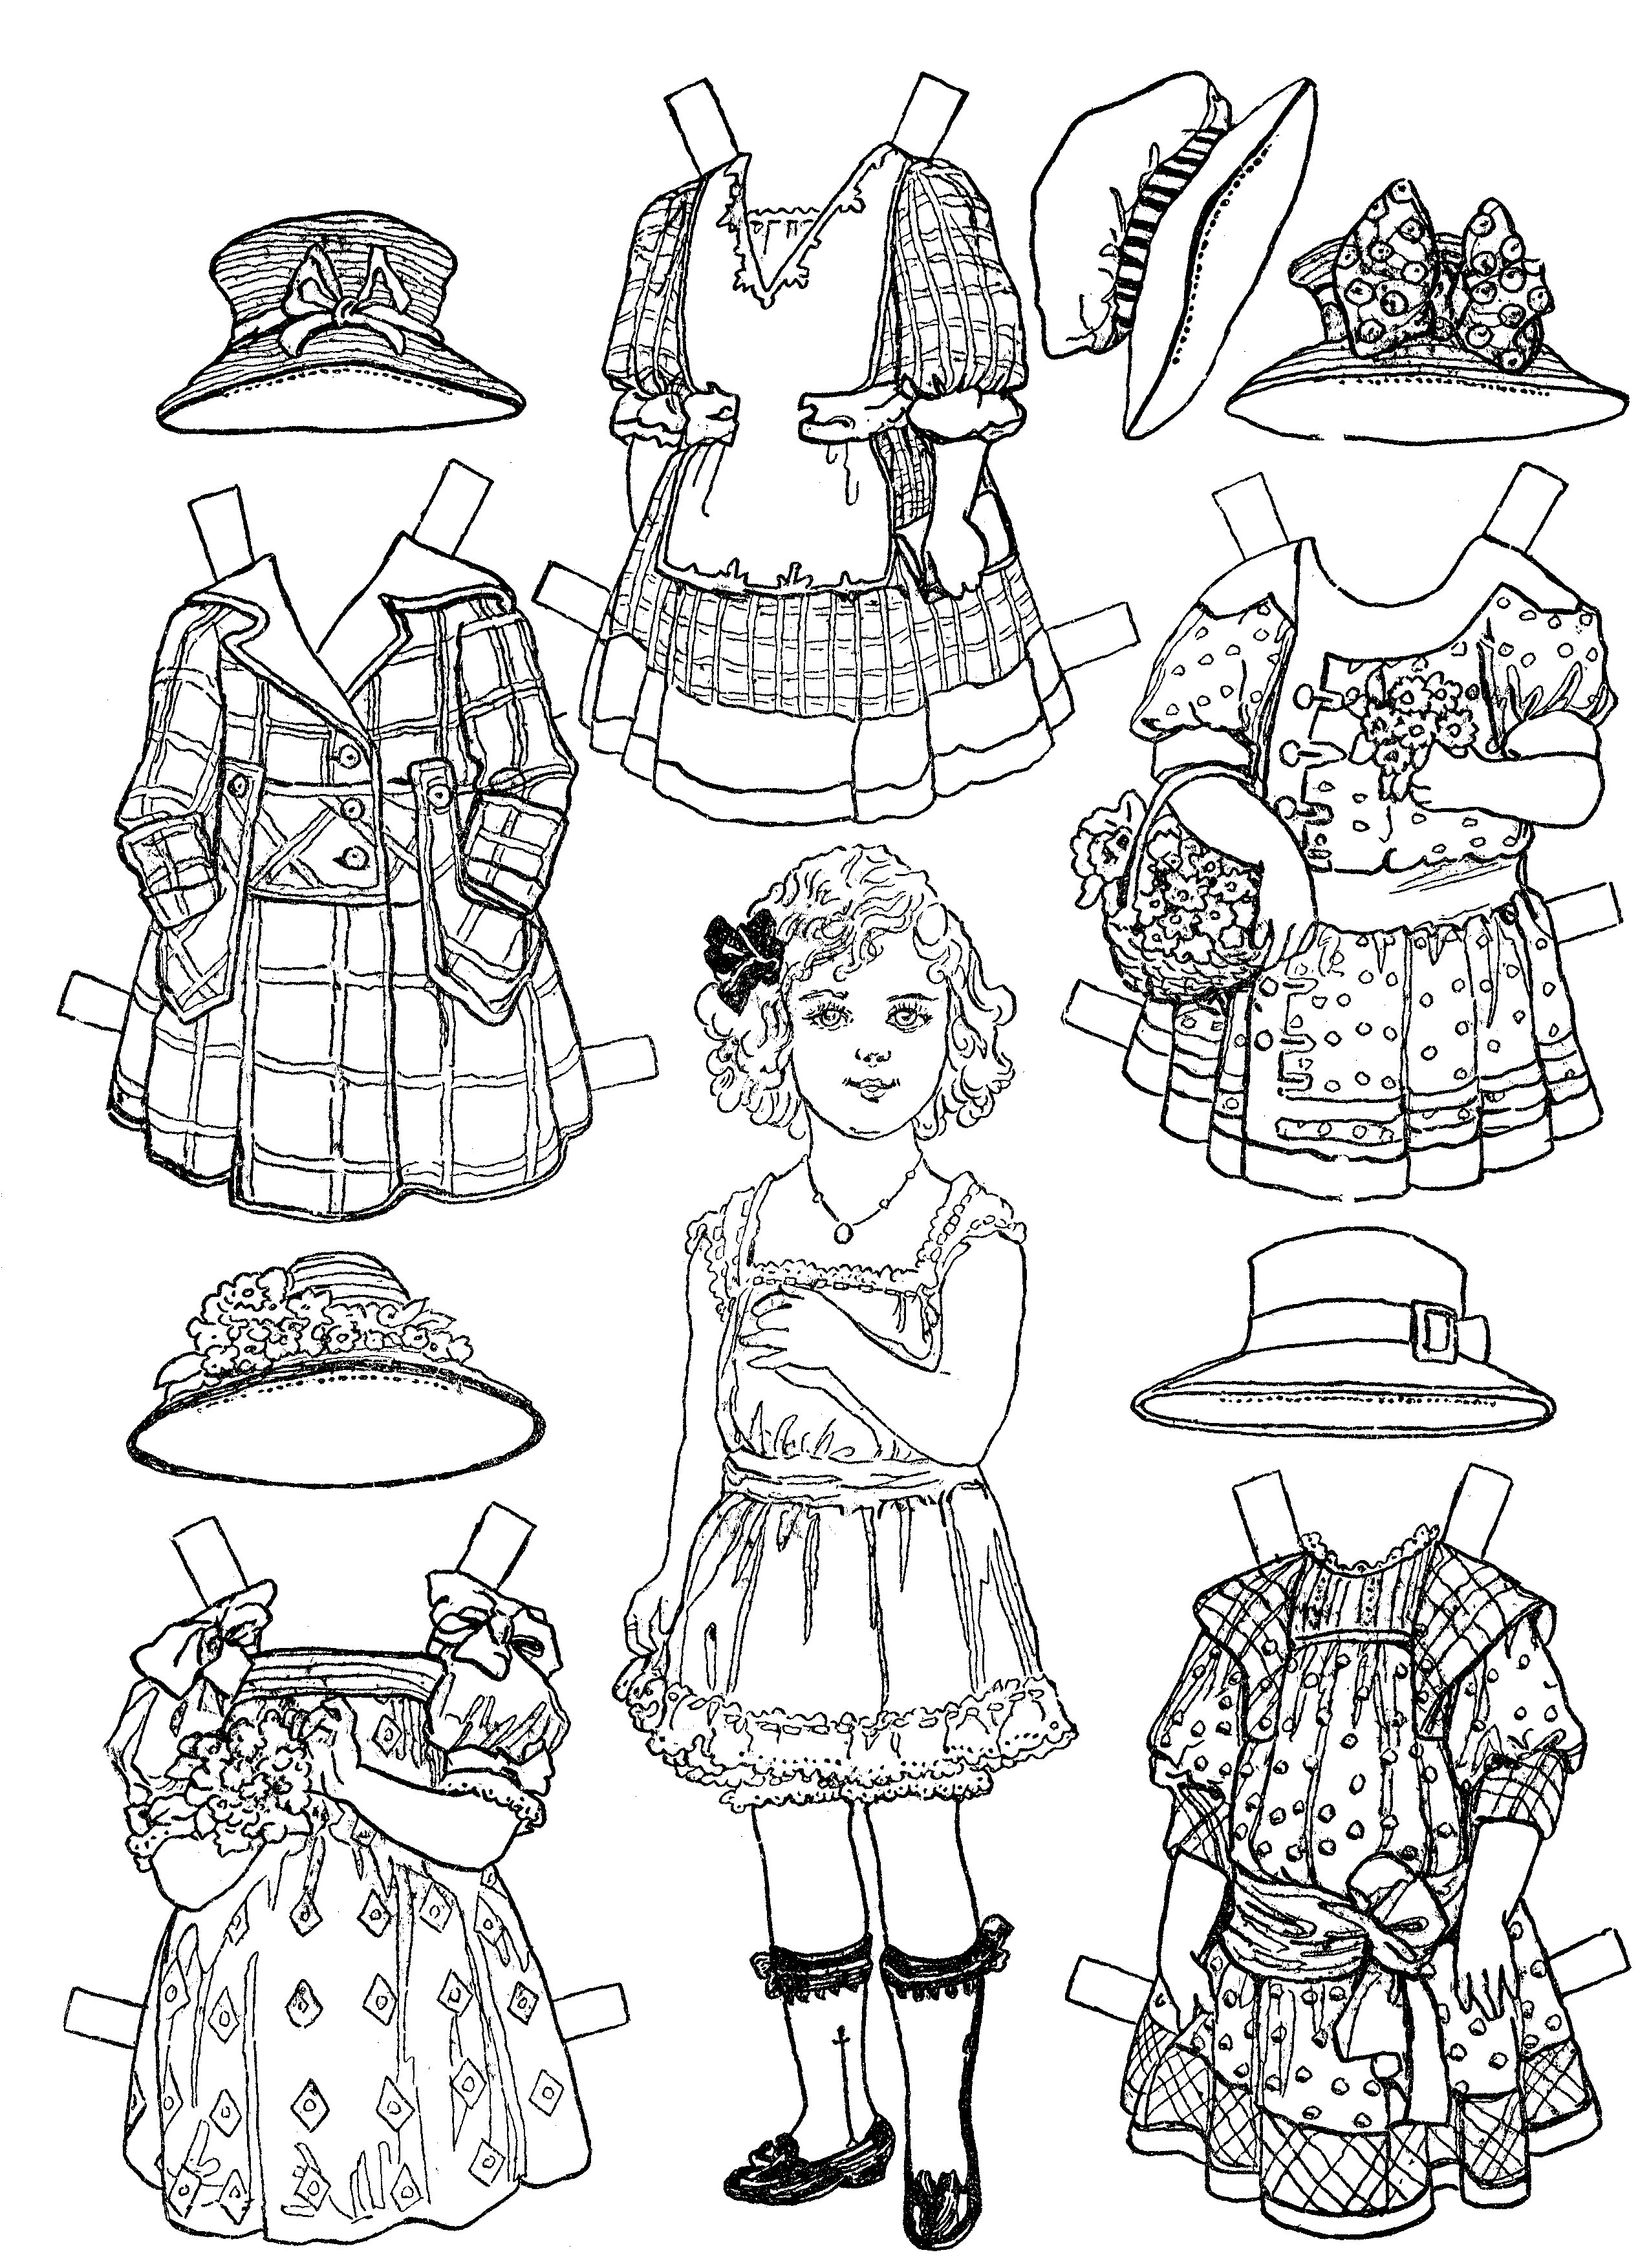 printable paper doll paisley summer a printable paper dollpaper thin personas paper doll printable